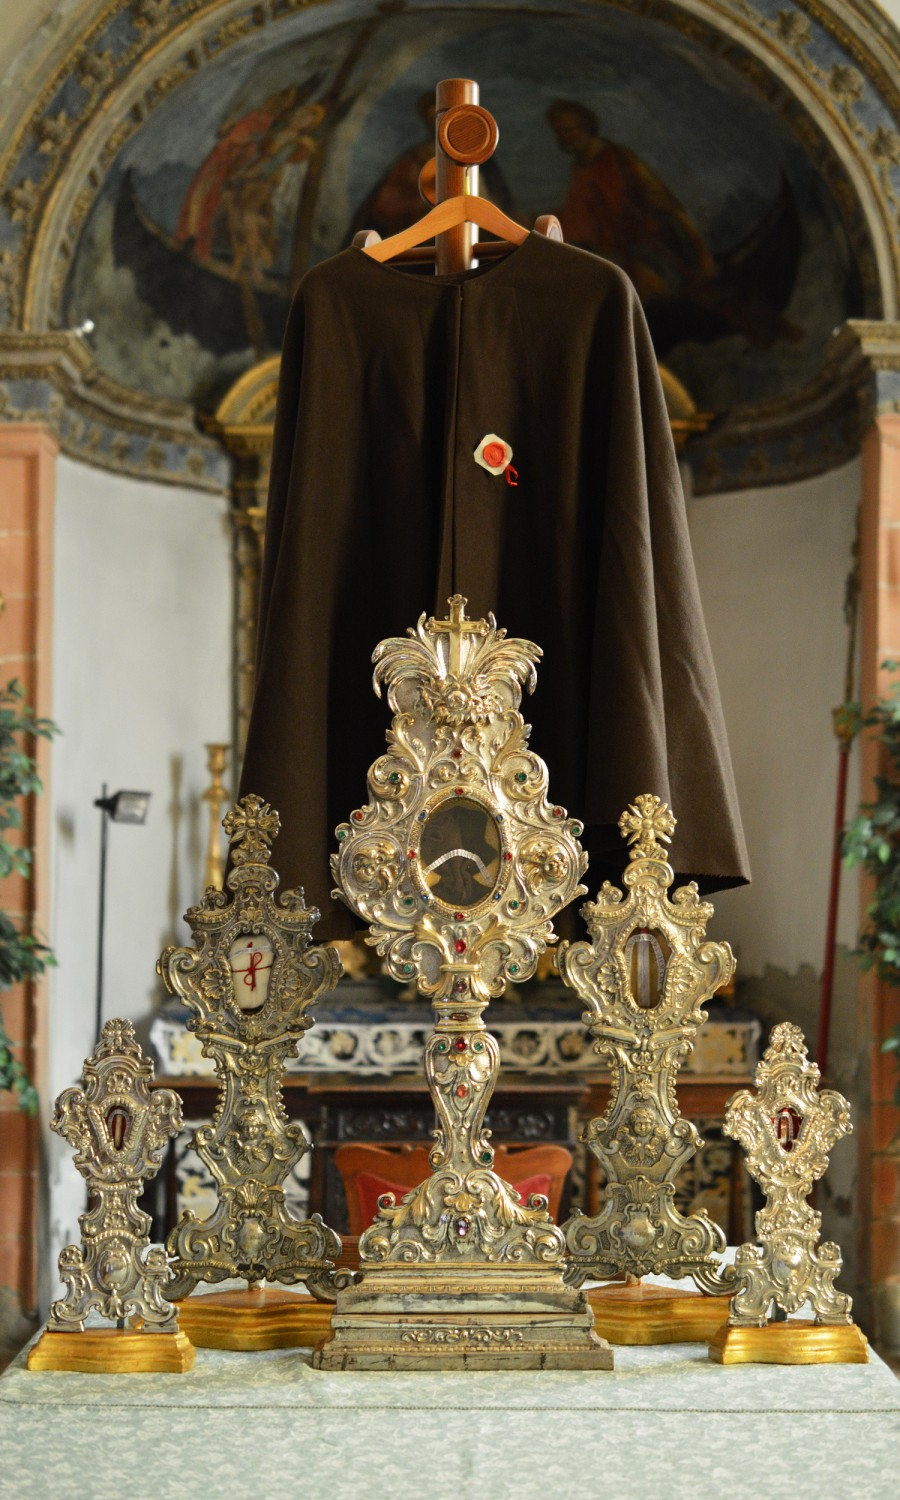 The relics include a glove (right) worn by Padre Pio